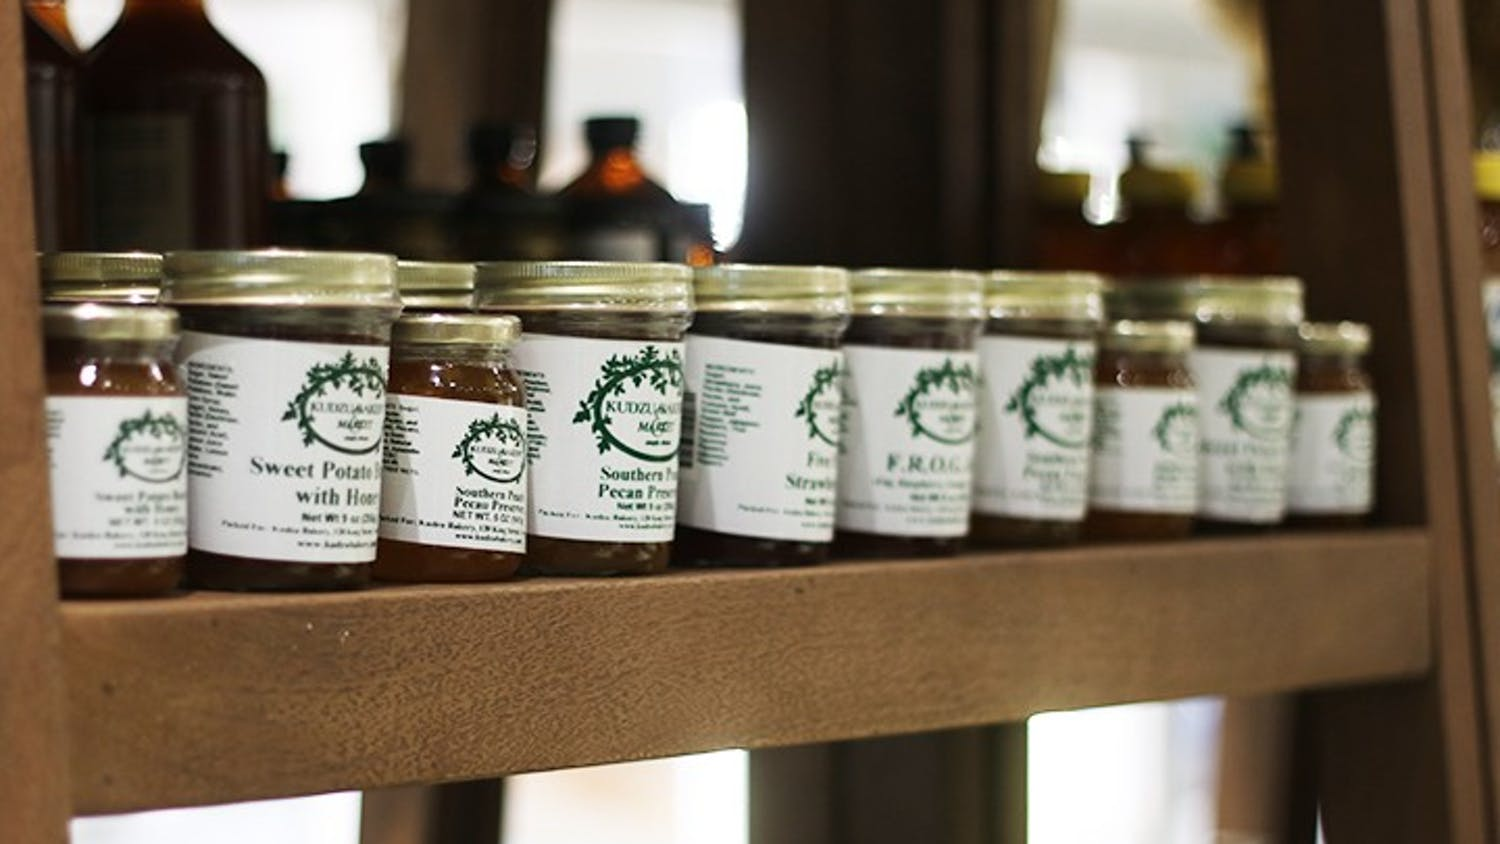 A row of Kudzu Bakery's preserves which come in a range of flavors and sizes.